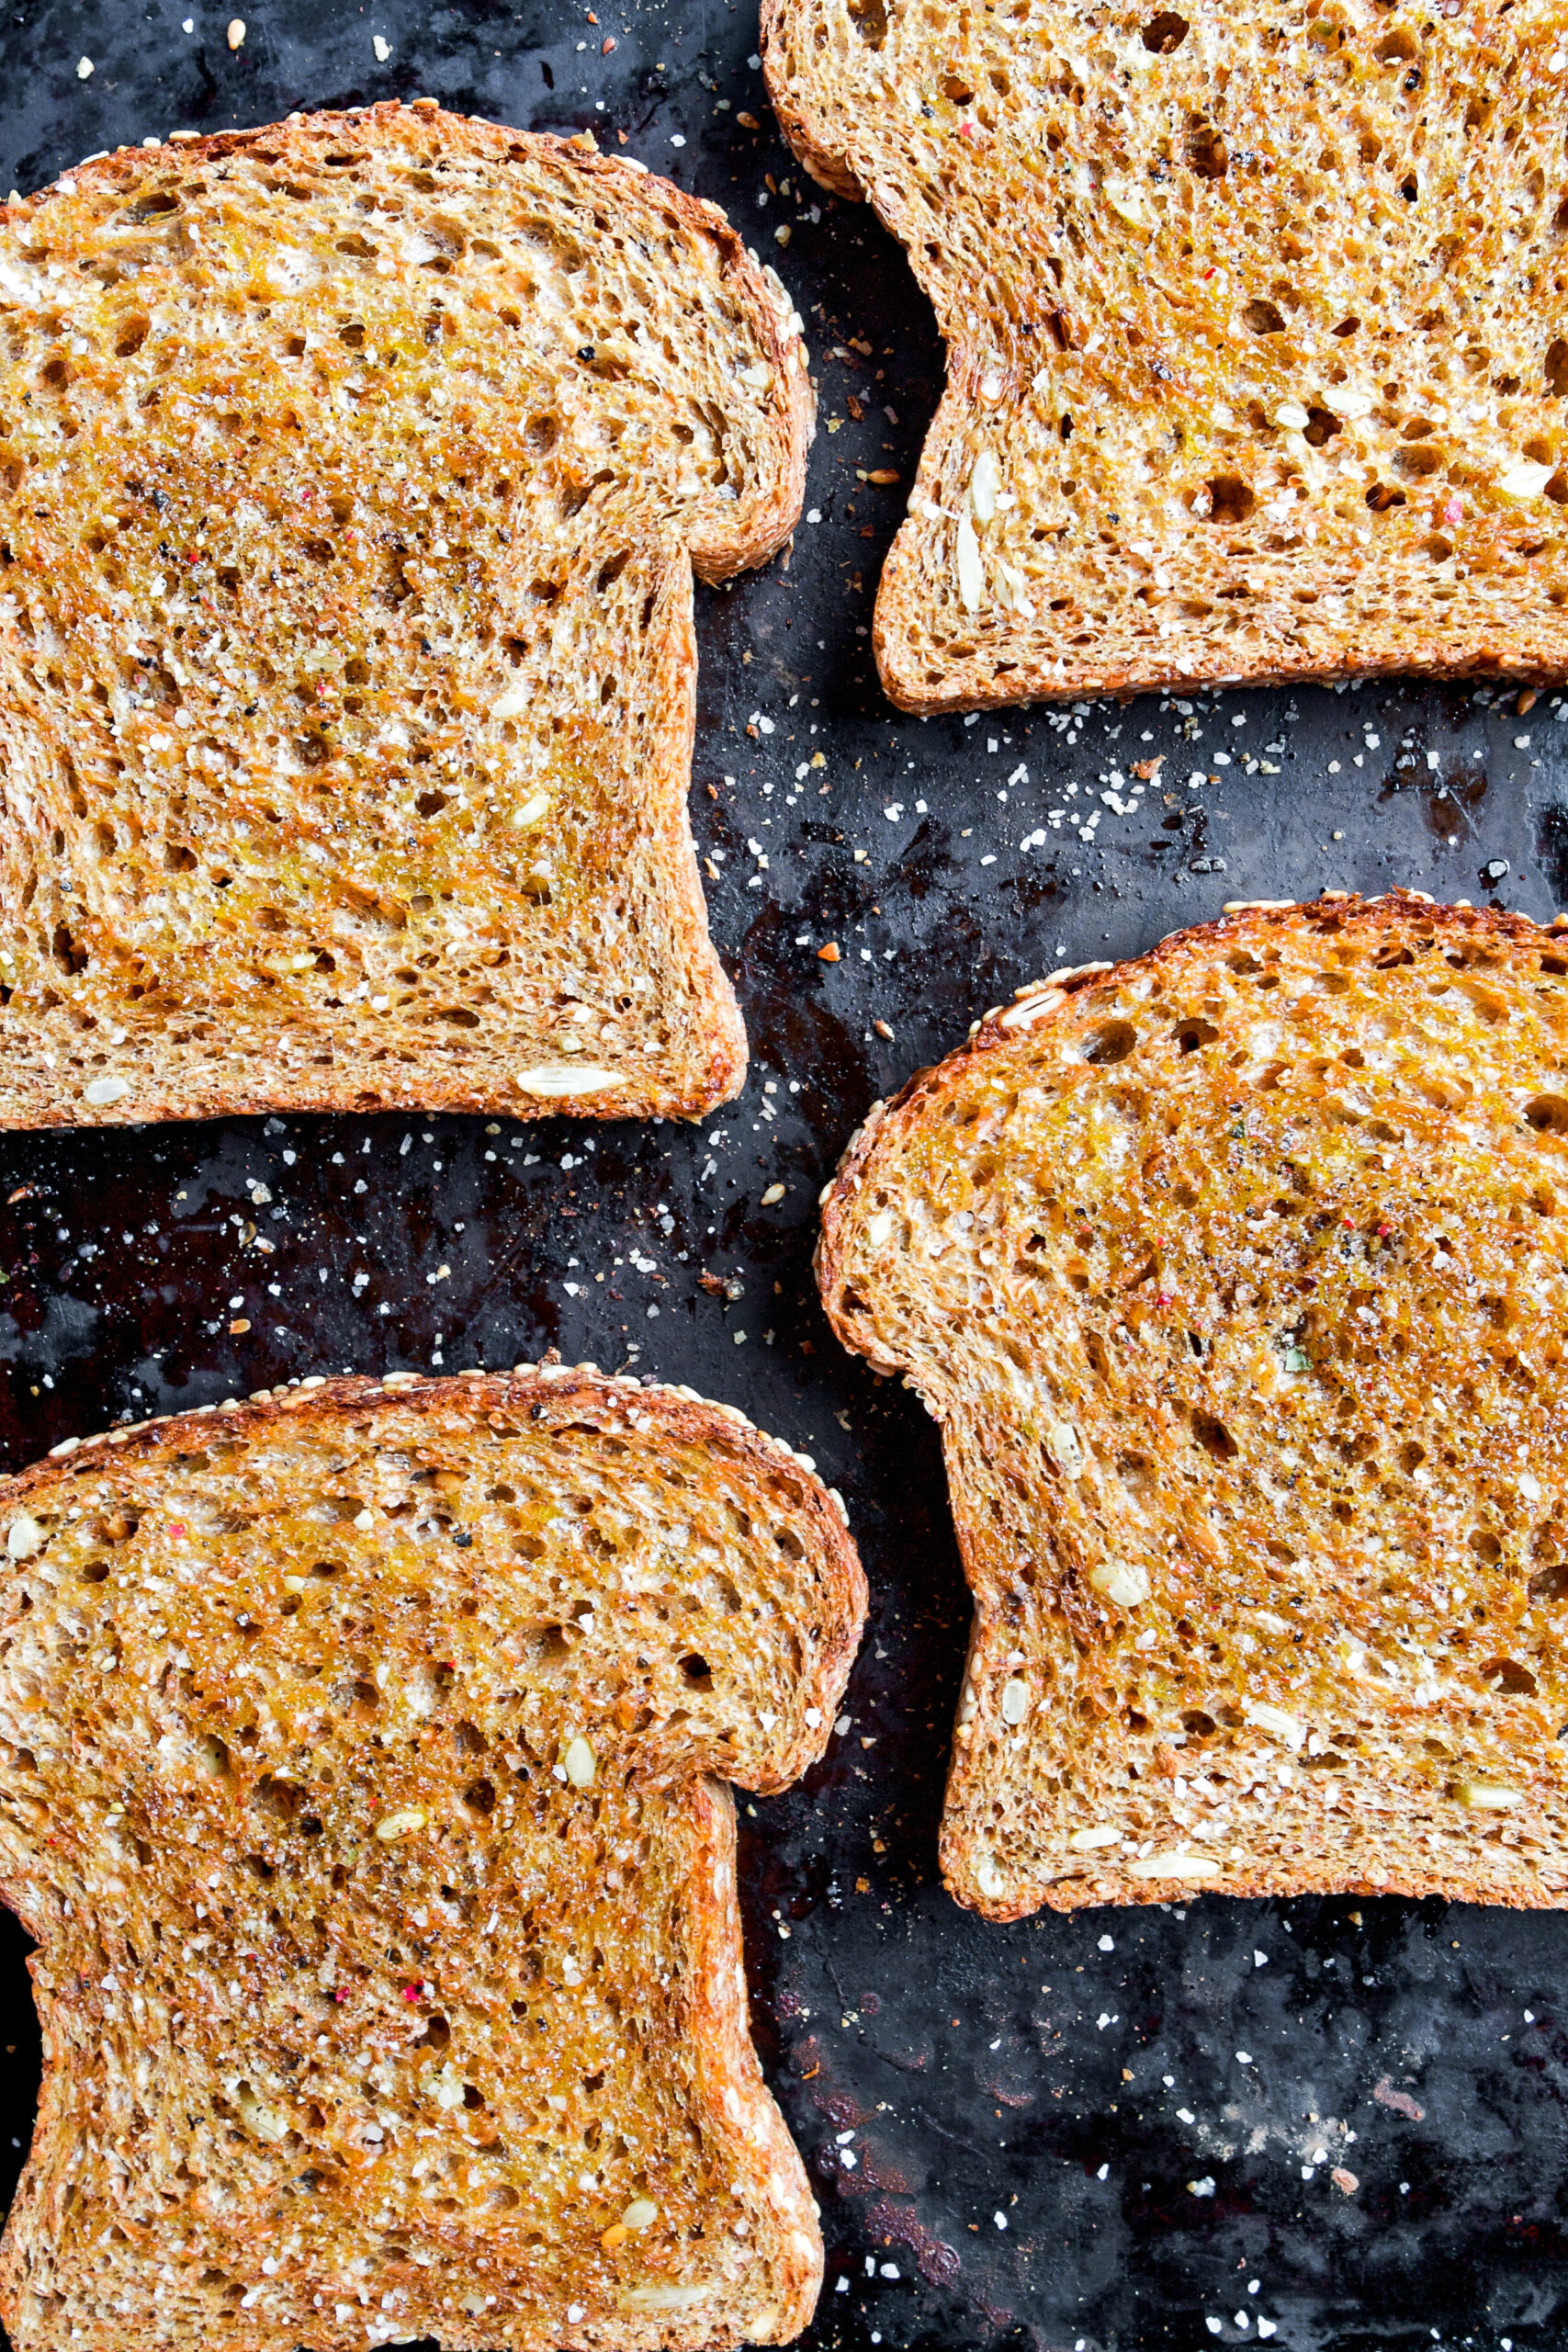 Toasted bread on black baking sheet